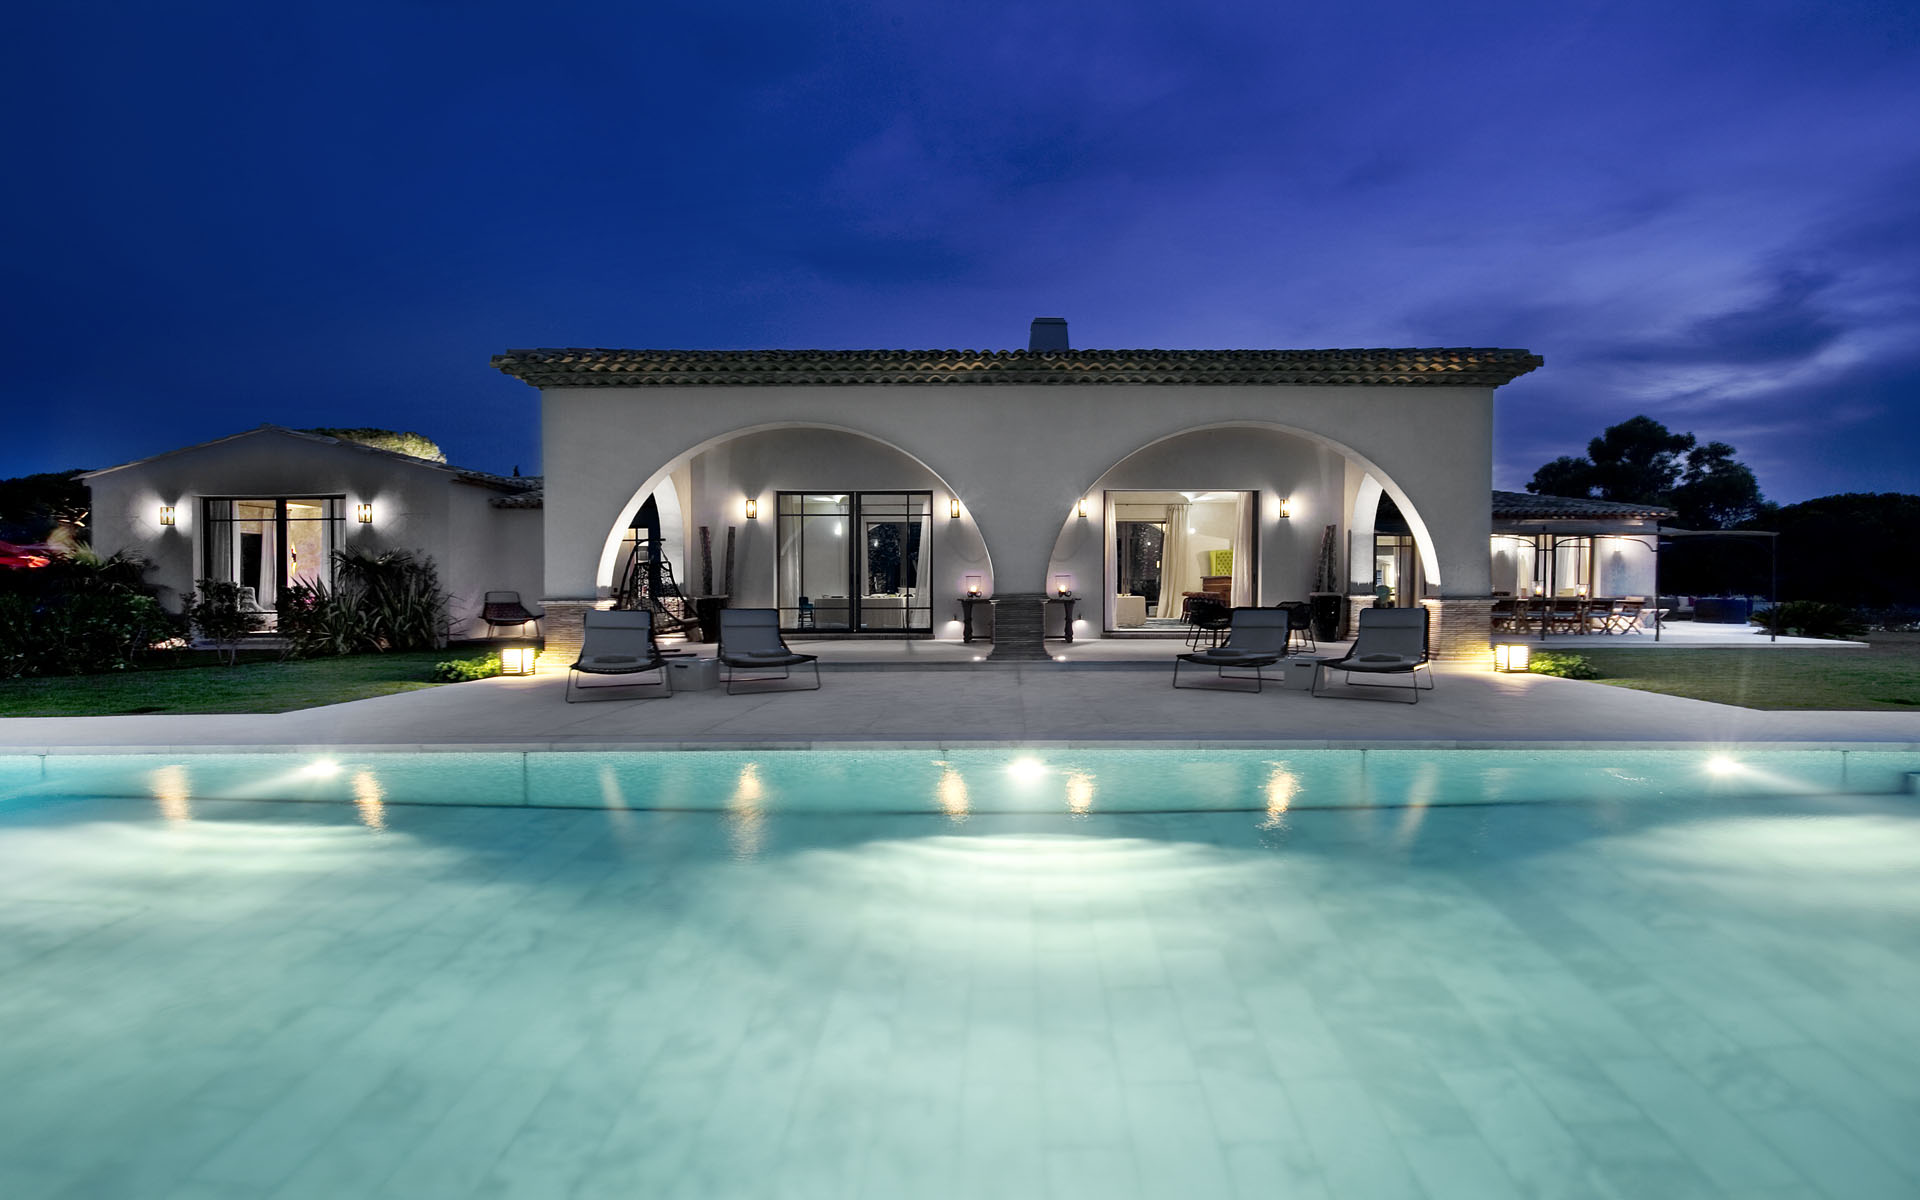 St tropez 39 s luxury villa peninsula 1 for Beautiful house designs with swimming pool